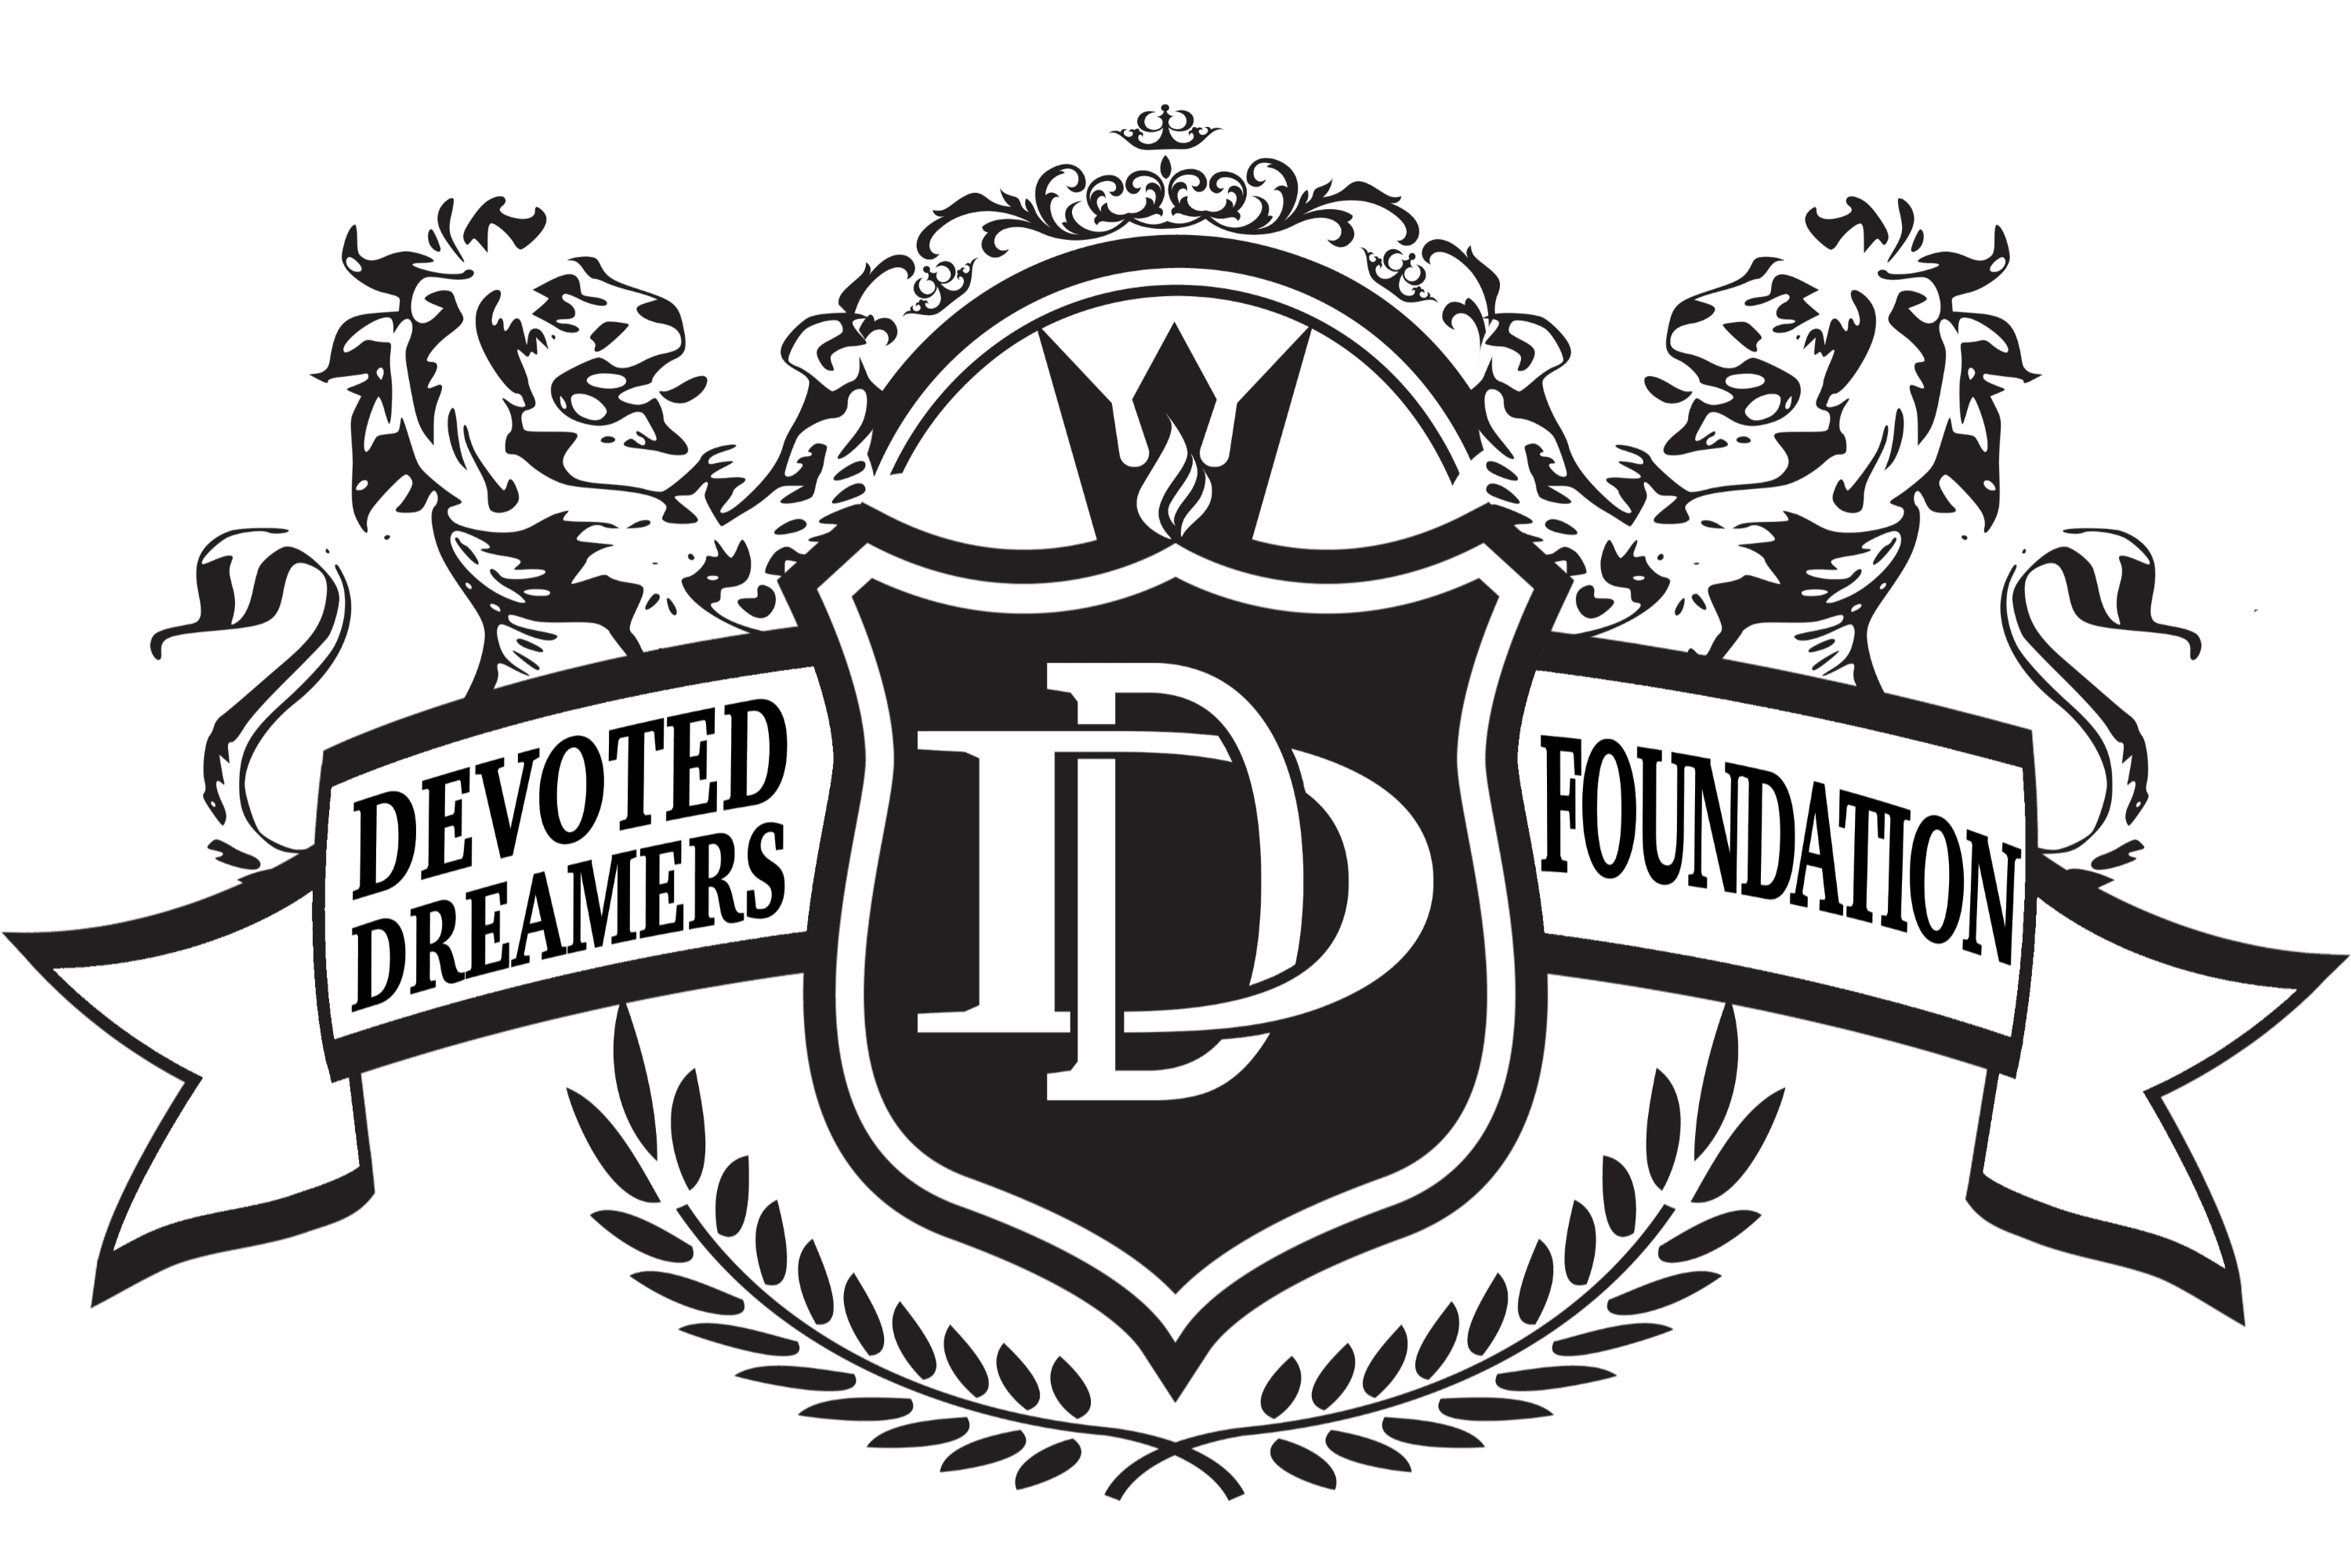 Devoted Dreamers Foundation